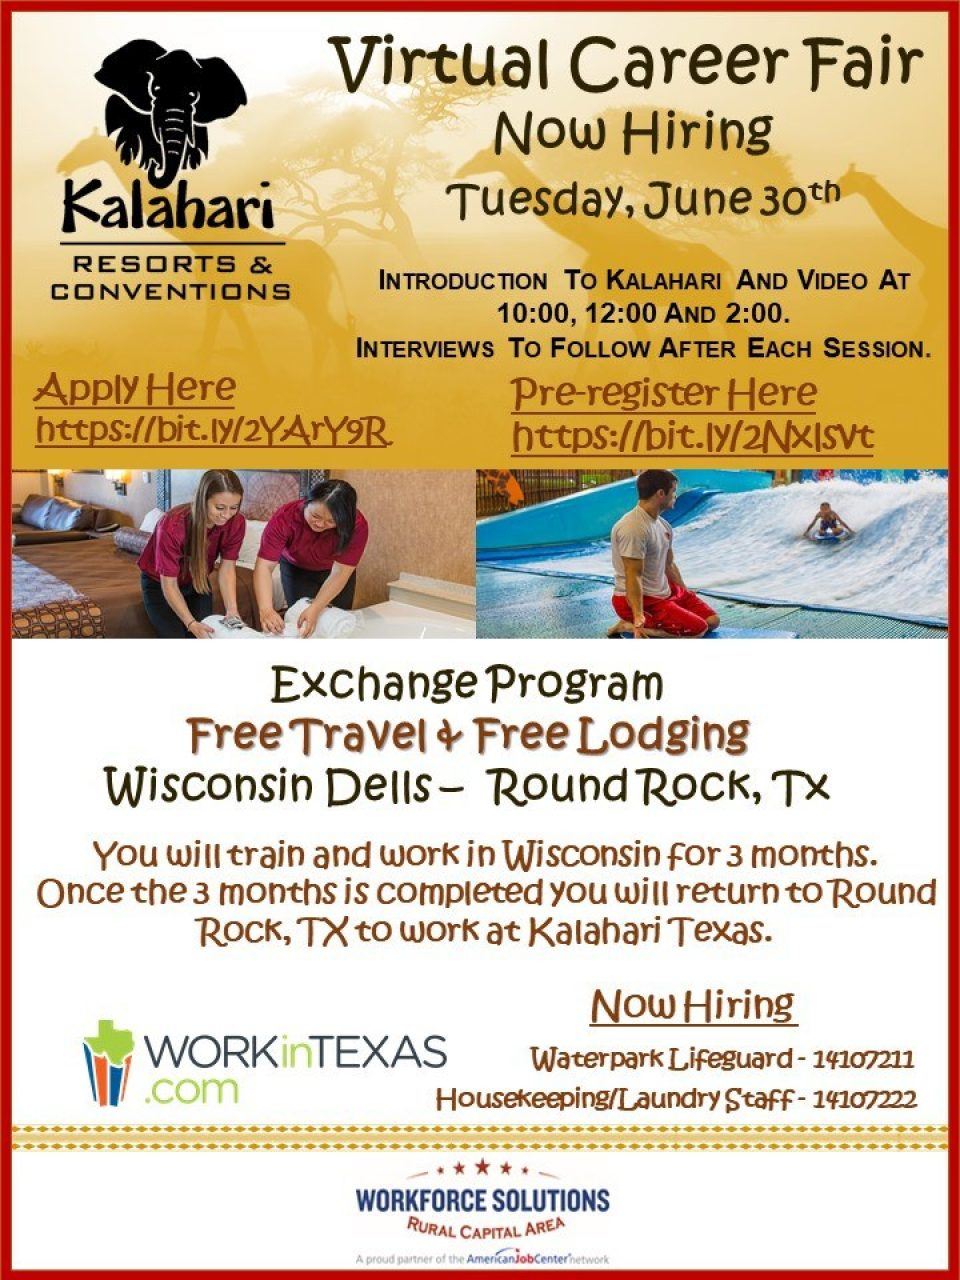 Don't Miss the Kalahari Resorts Virtual Career Fair on June 30 to Explore Paid Internship Exchange Opportunities